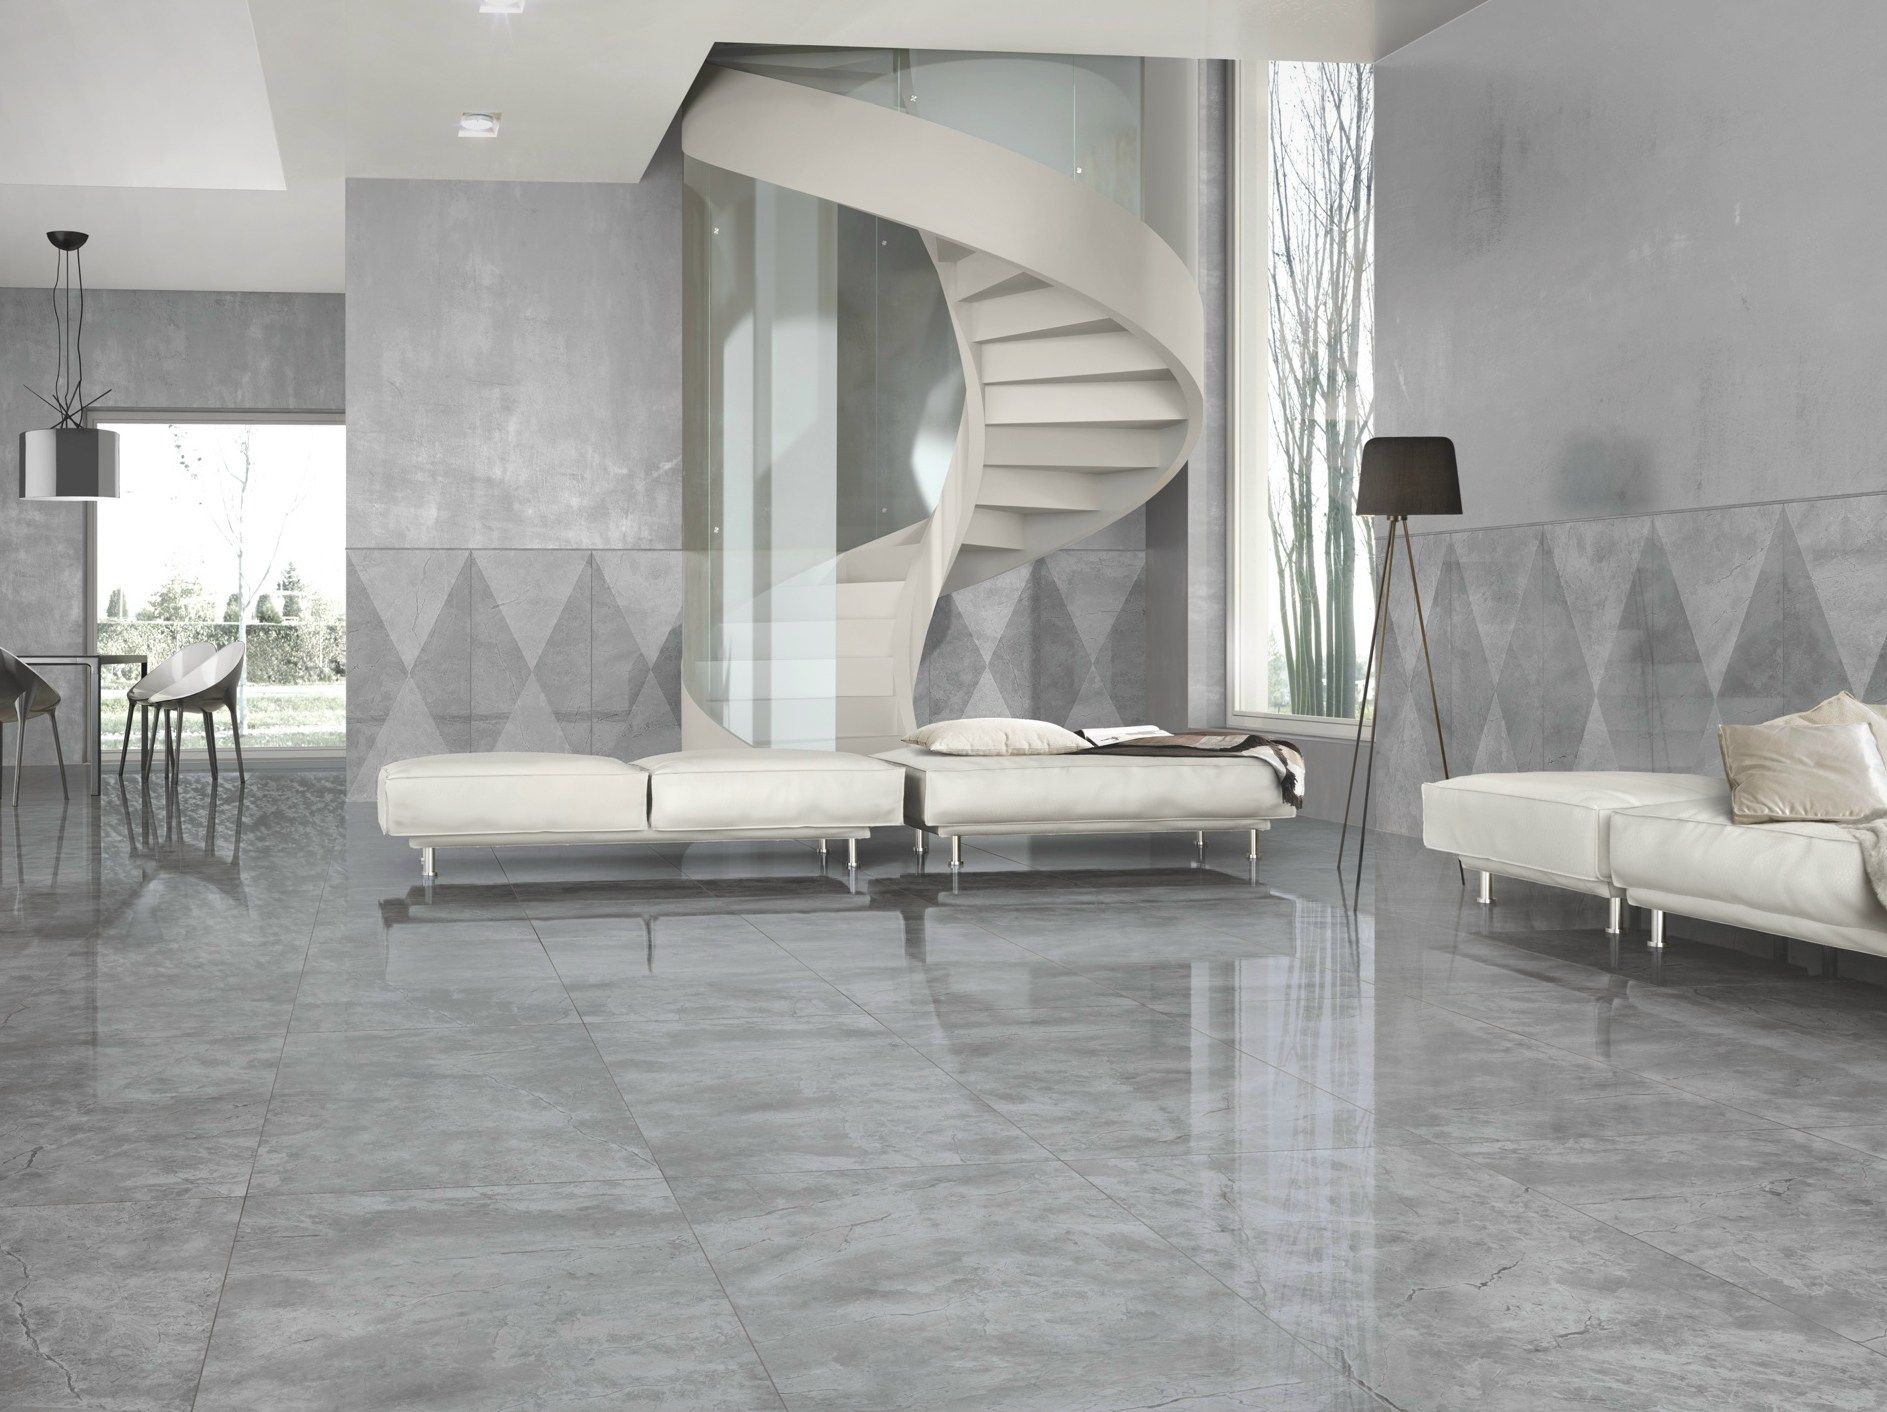 Carrelage Marbre Brillant Porcelain Stoneware Wall Floor Tiles With Marble Effect